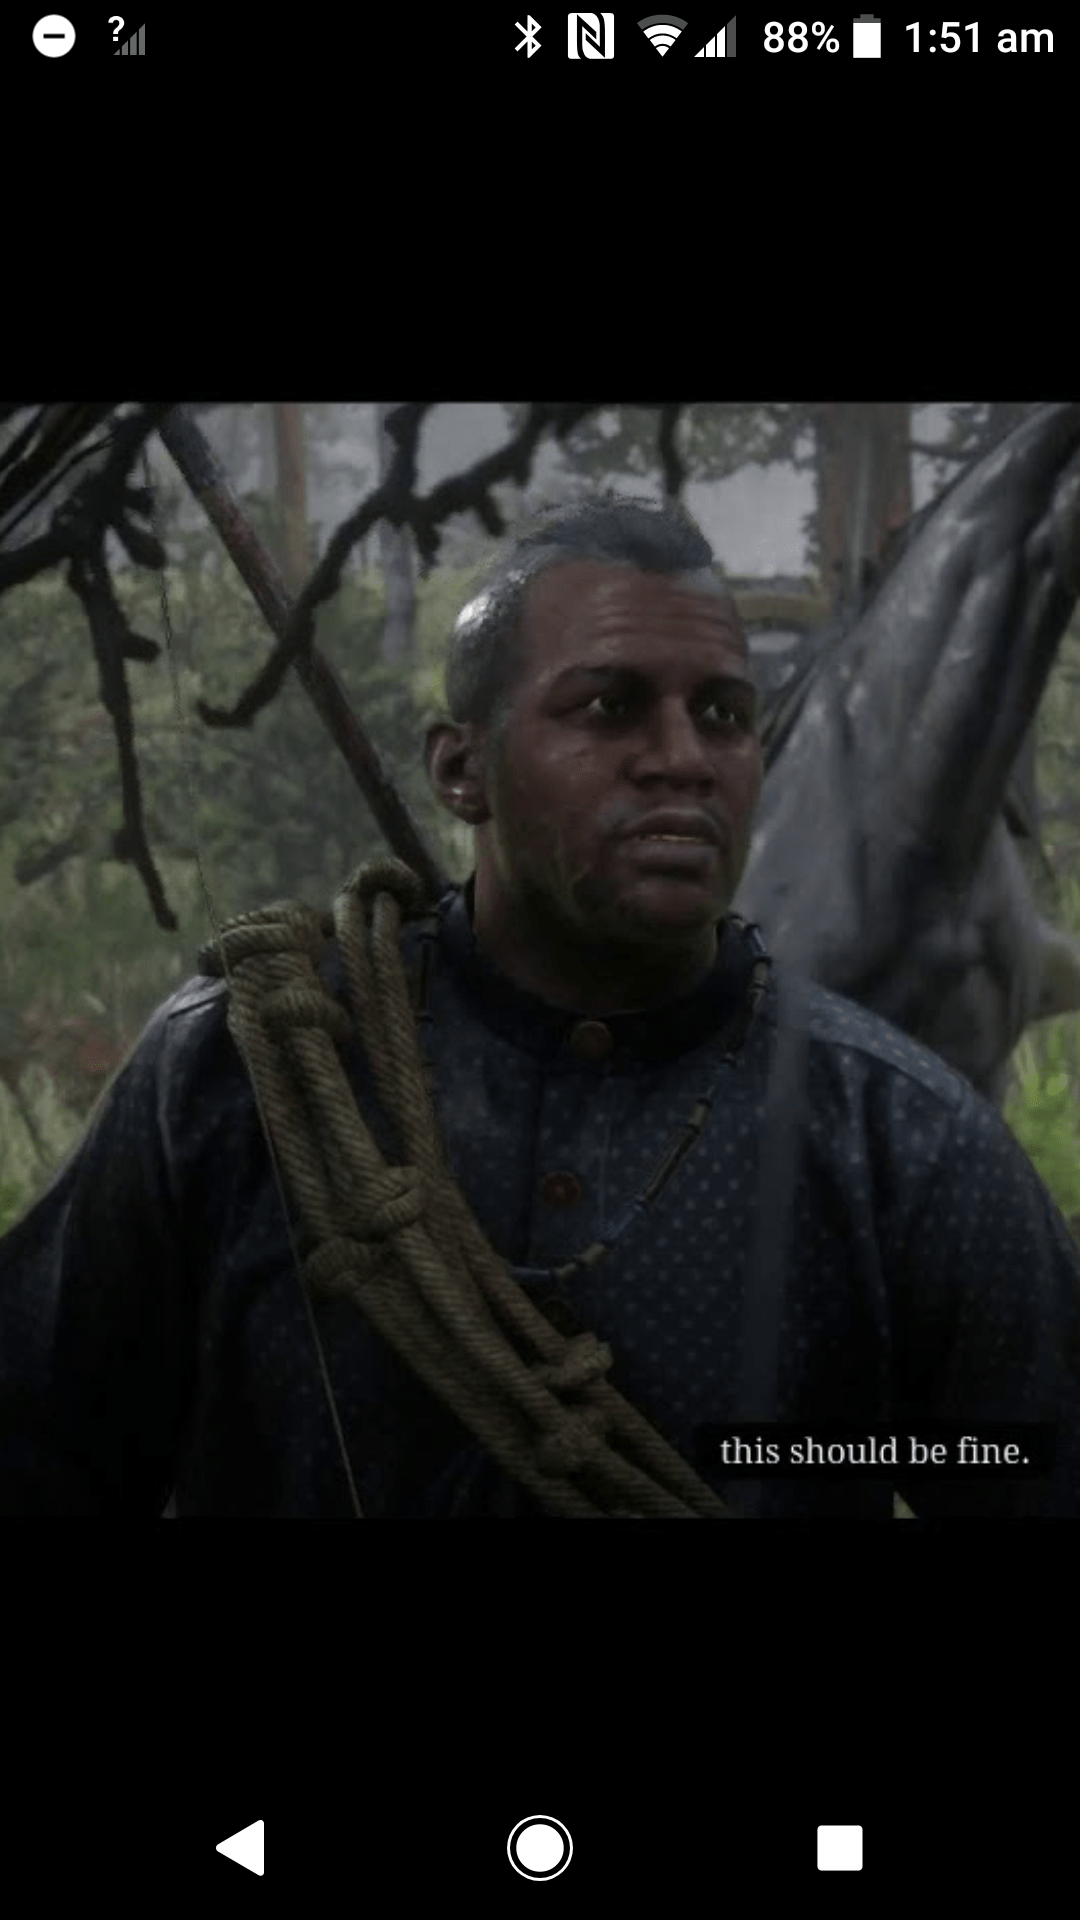 Red Dead Redemption 2 Hairstyles : redemption, hairstyles, Hairstyle, Level, Beard, Online, Happy, Reddeadredemption